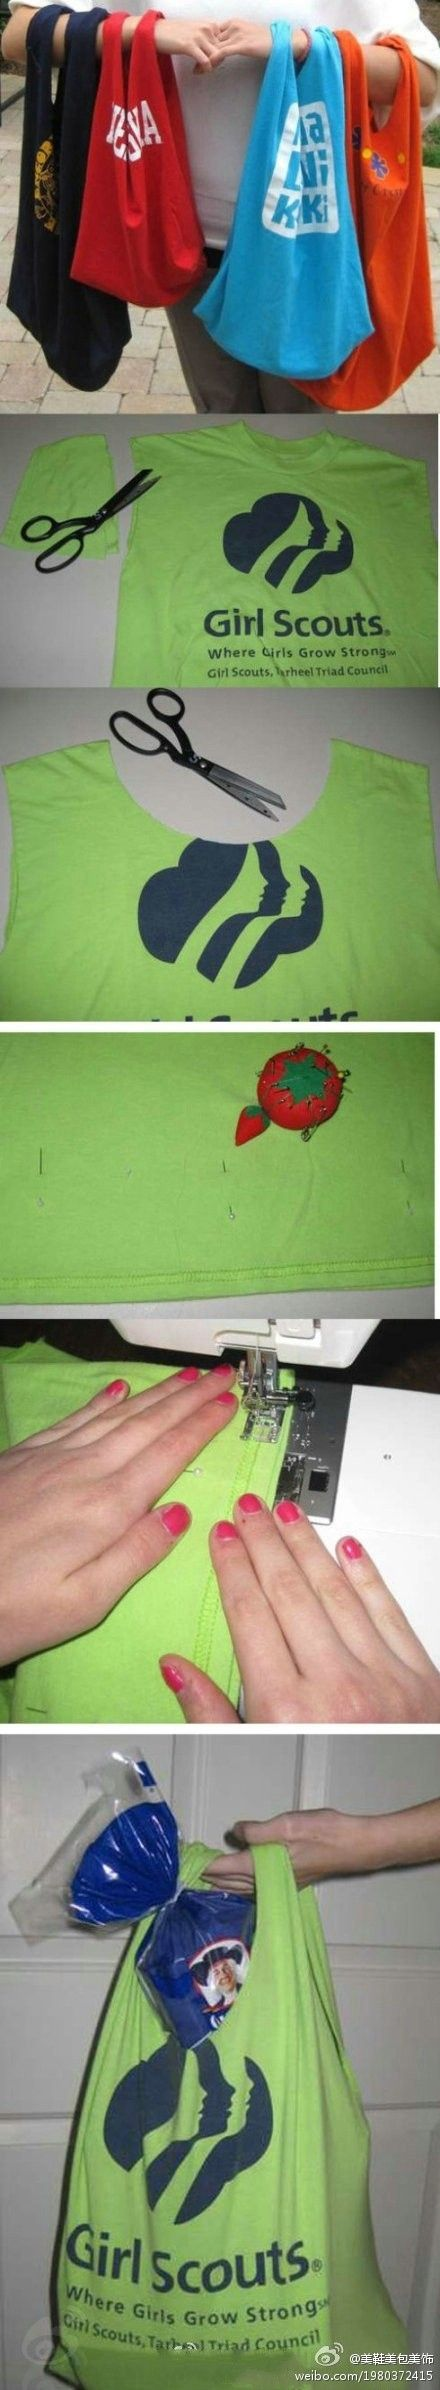 Repurpose old t-shirts by making reusable bags from them. #upcycle